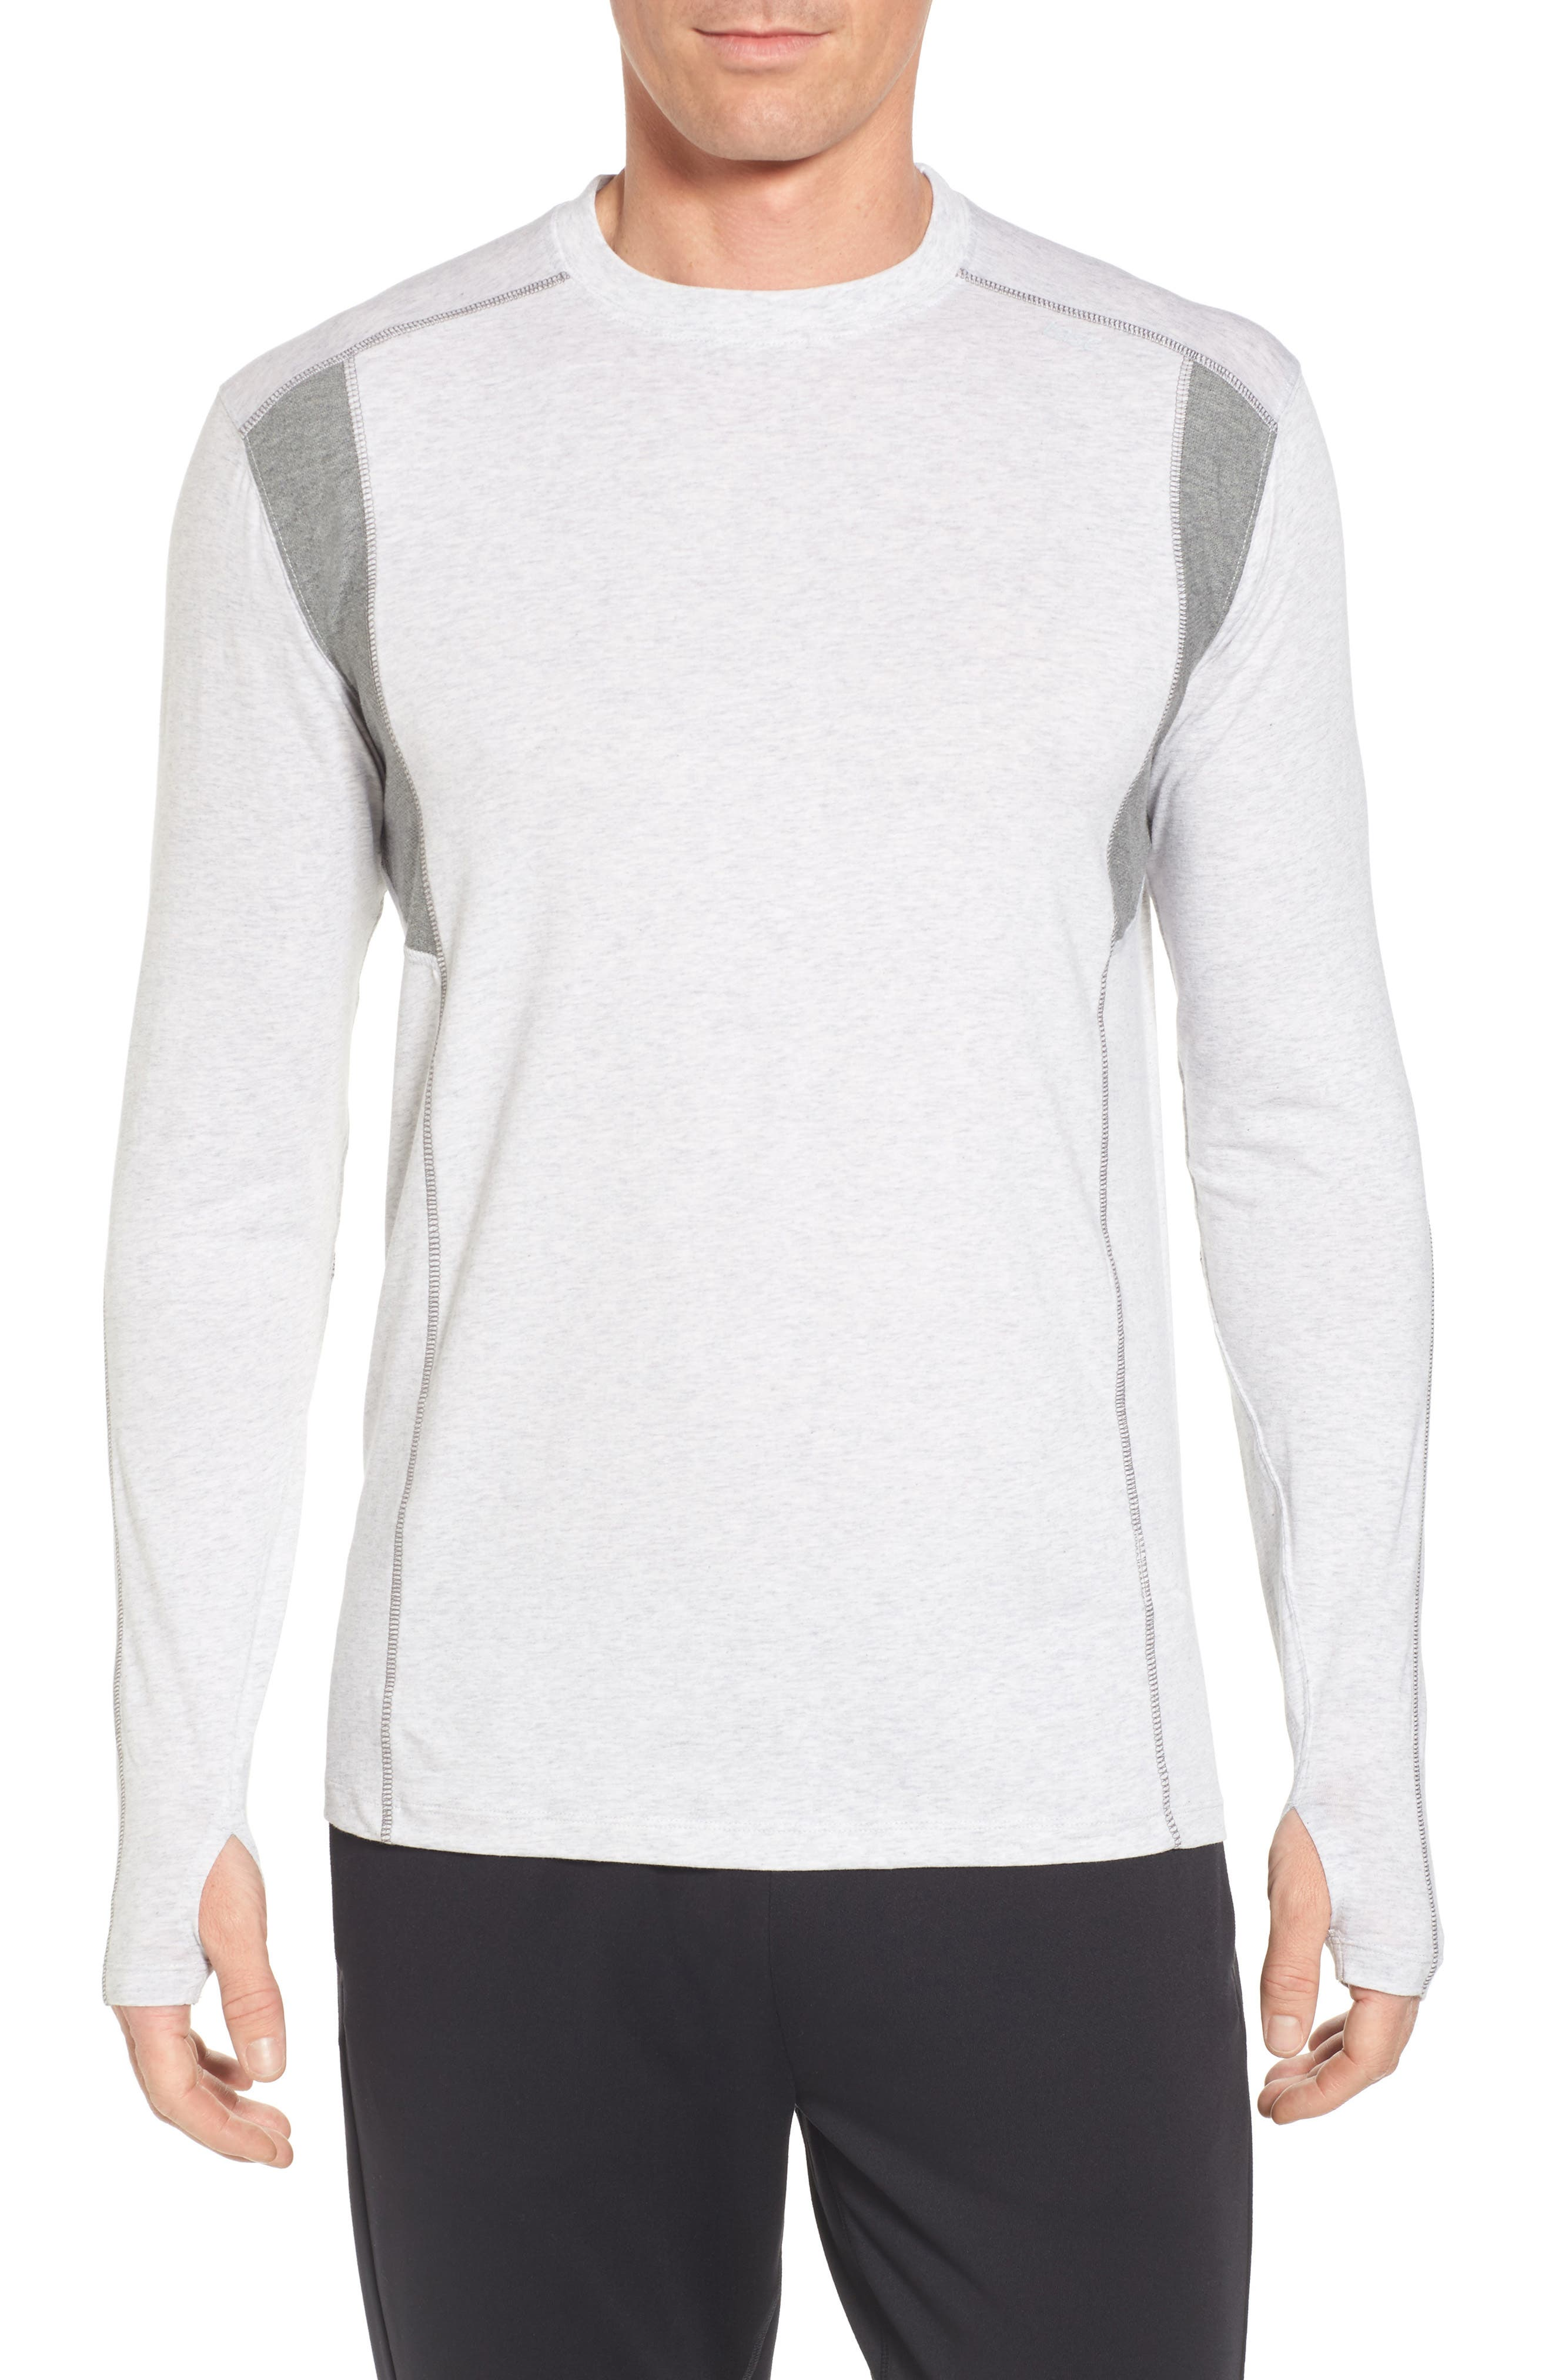 Charge Sweatshirt,                             Main thumbnail 1, color,                             Light Heather Gray